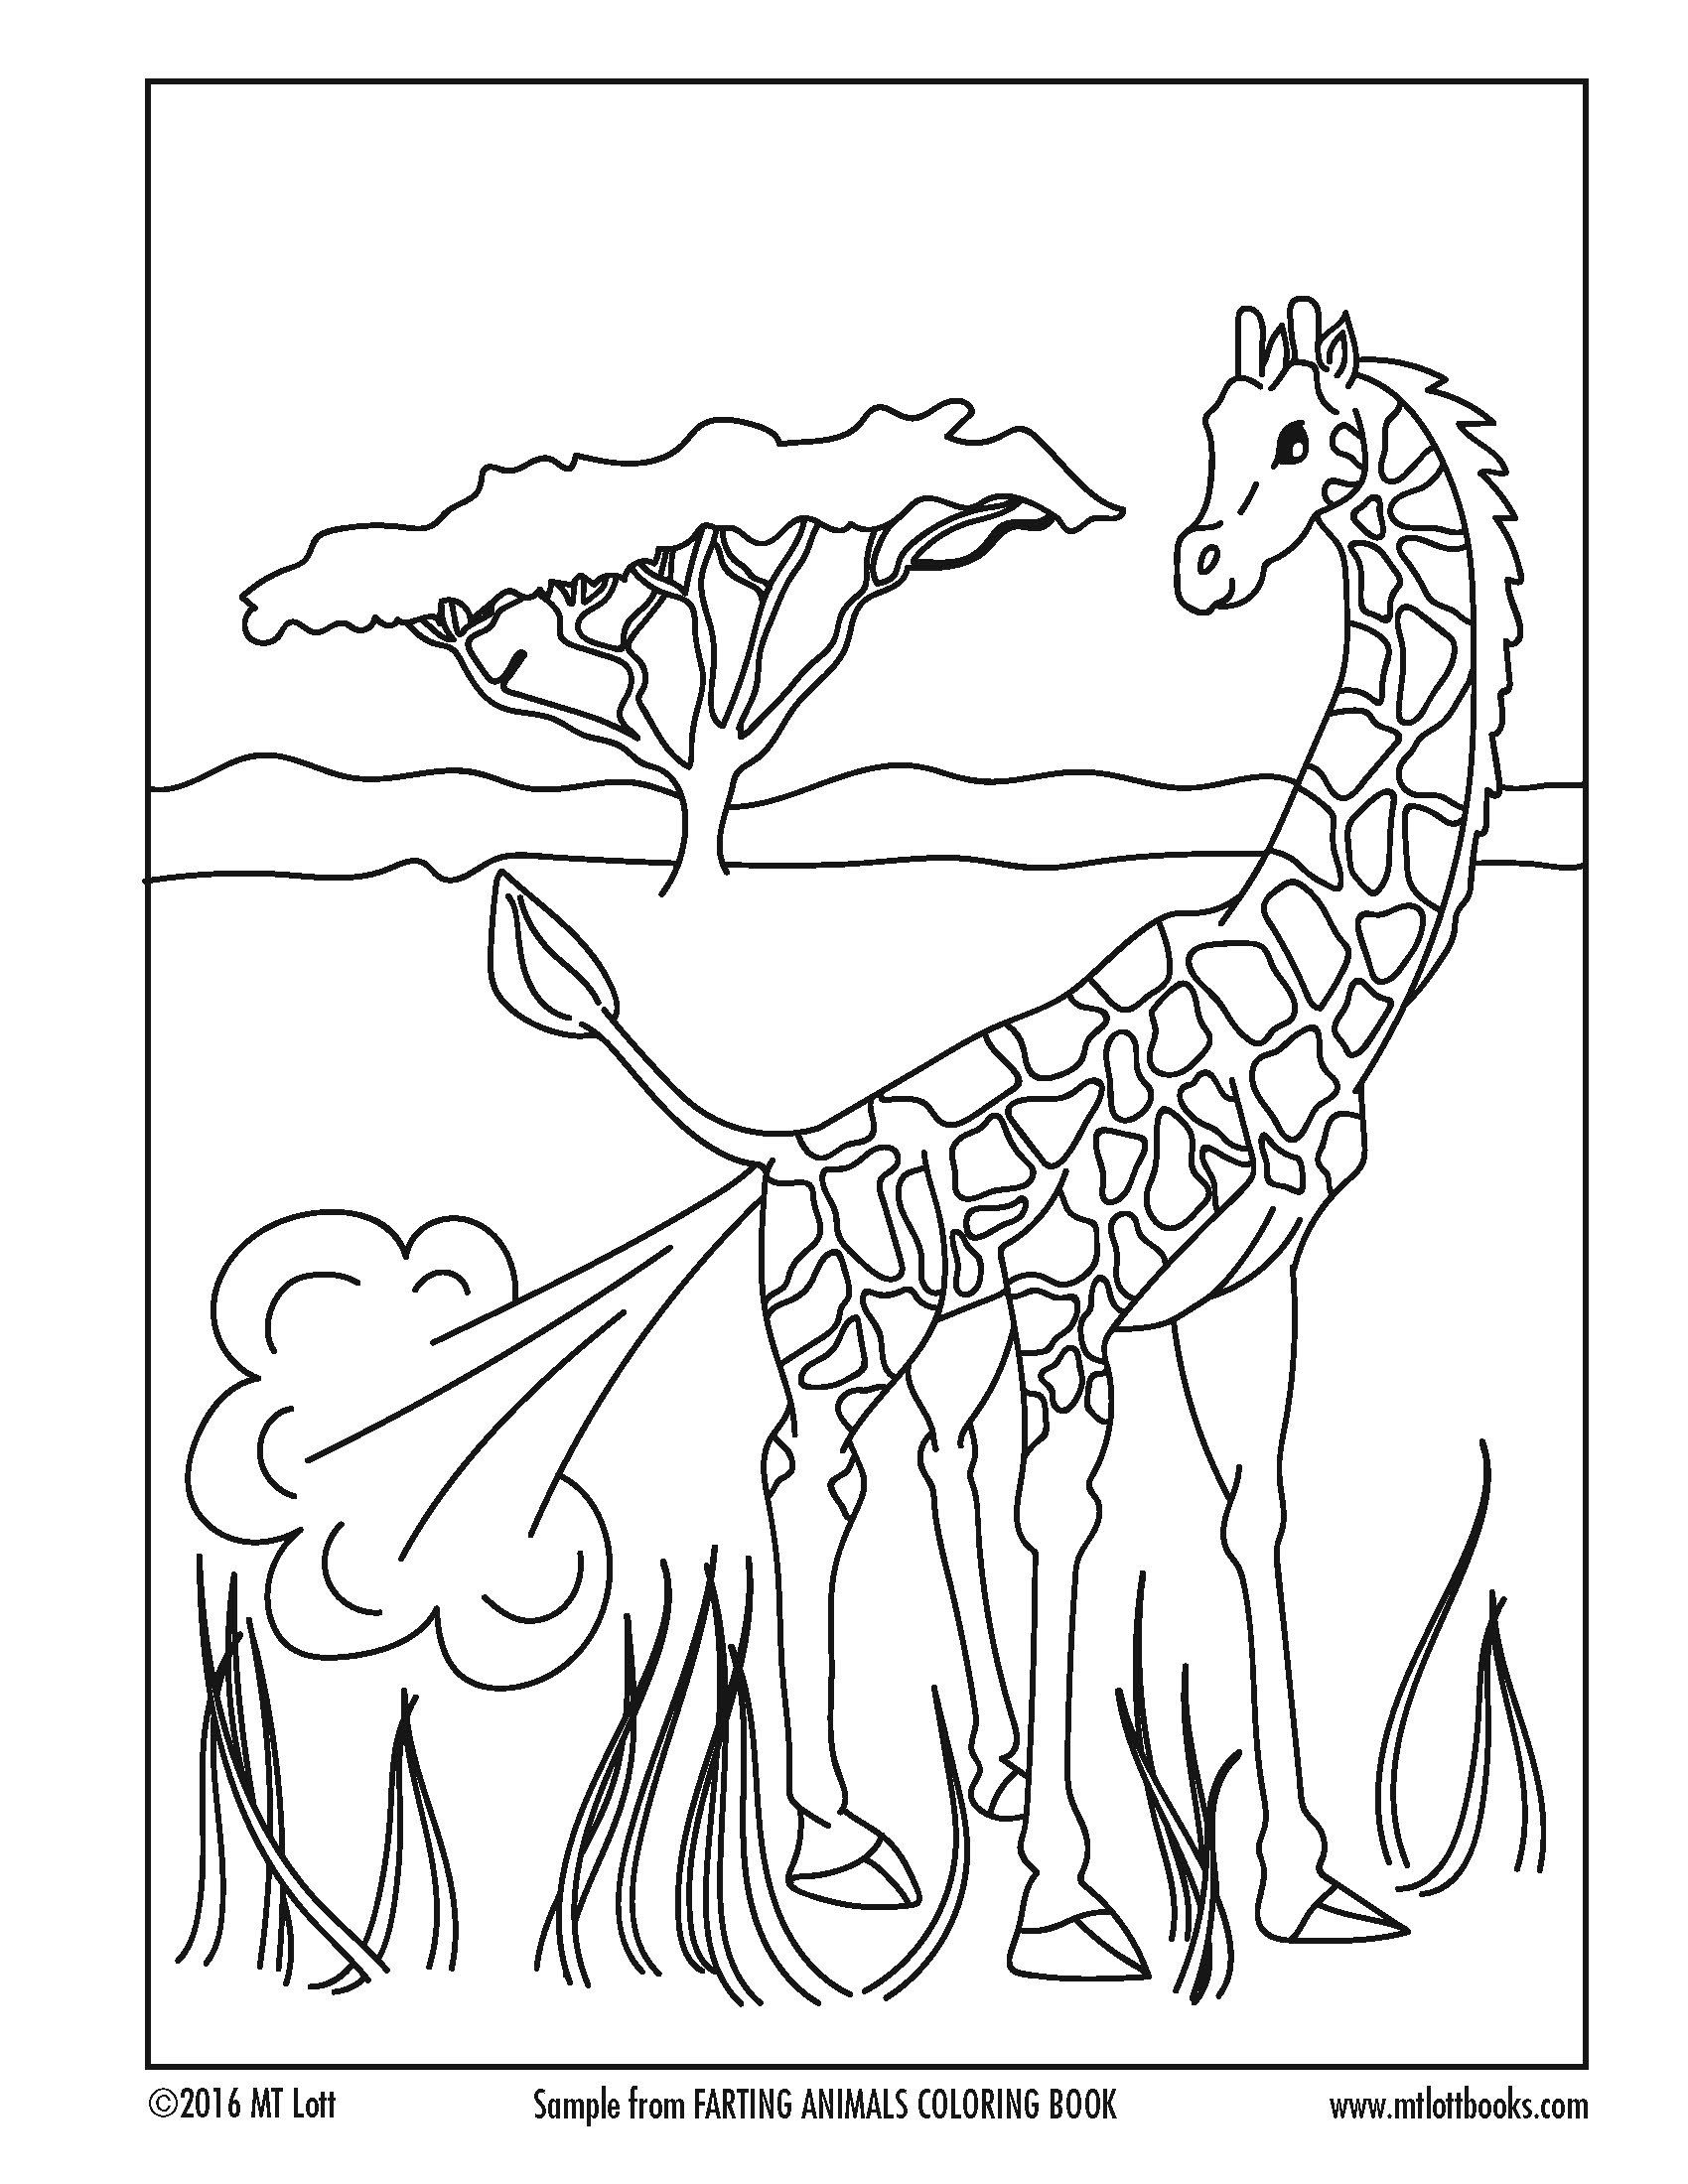 Free Coloring Page From M T Lott S Farting Animals Coloring Book Animal Coloring Pages Coloring Pages Animal Coloring Books